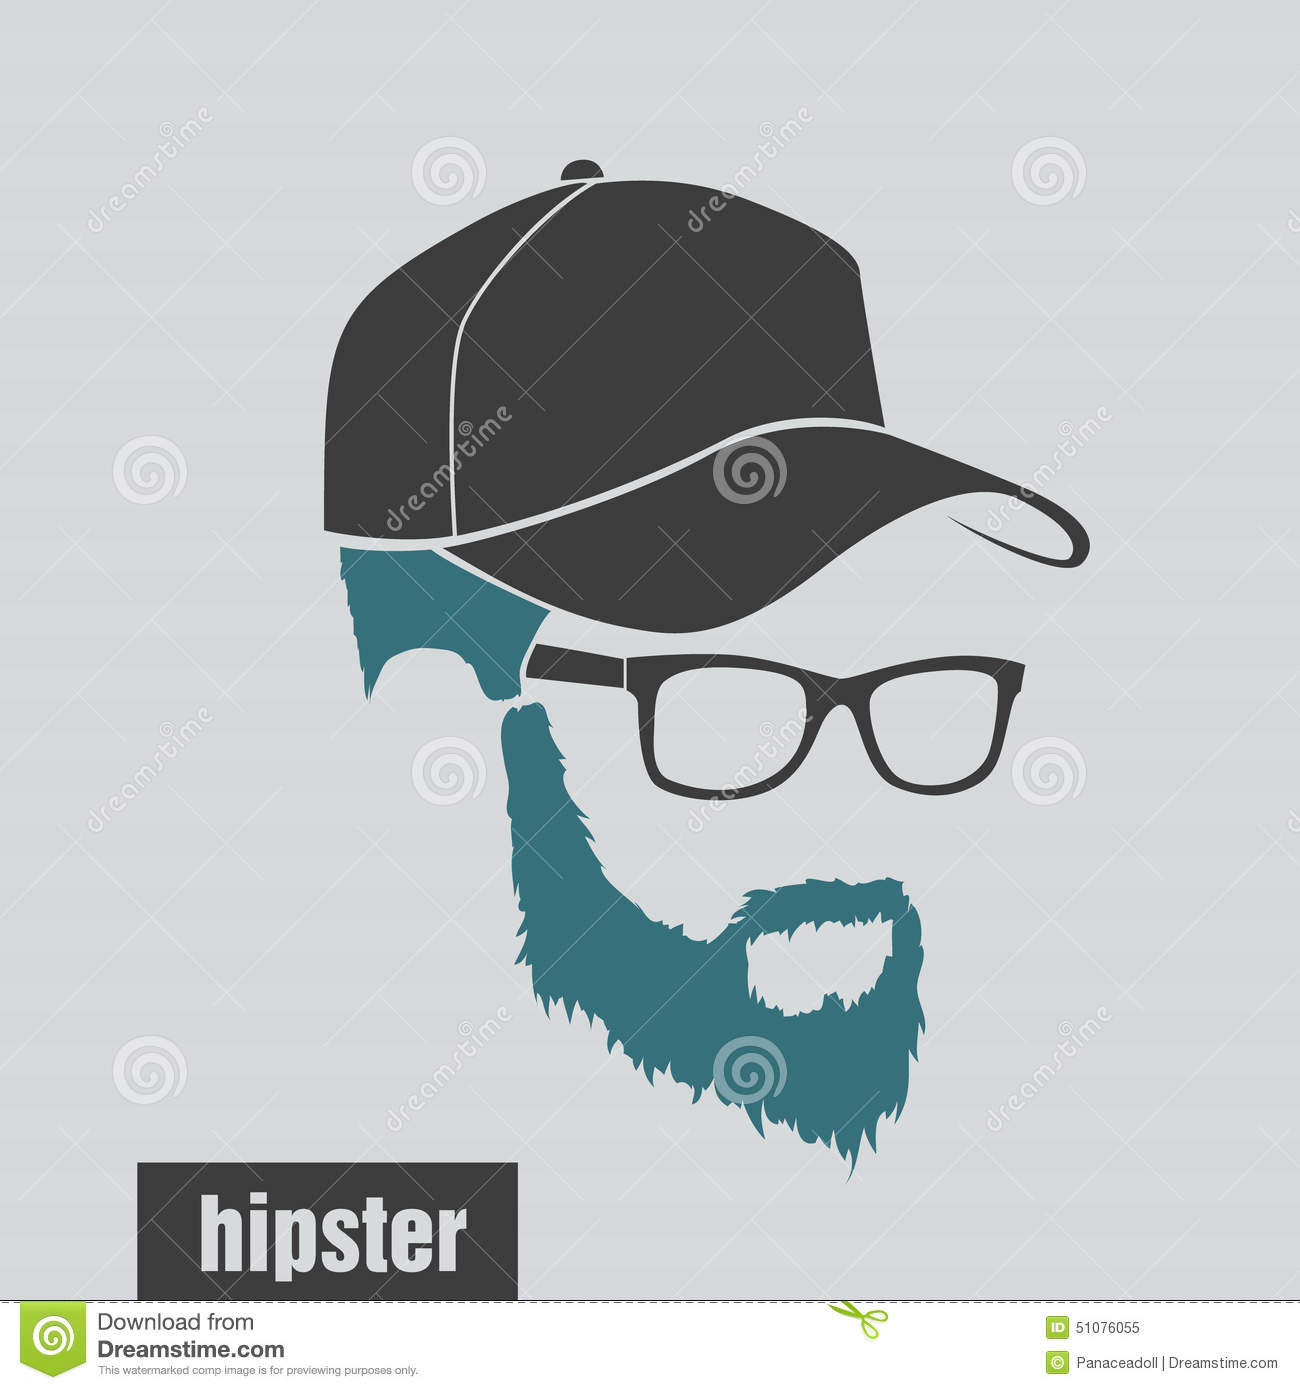 Icons Hairstyles Beard And Mustache Hipster Full Stock